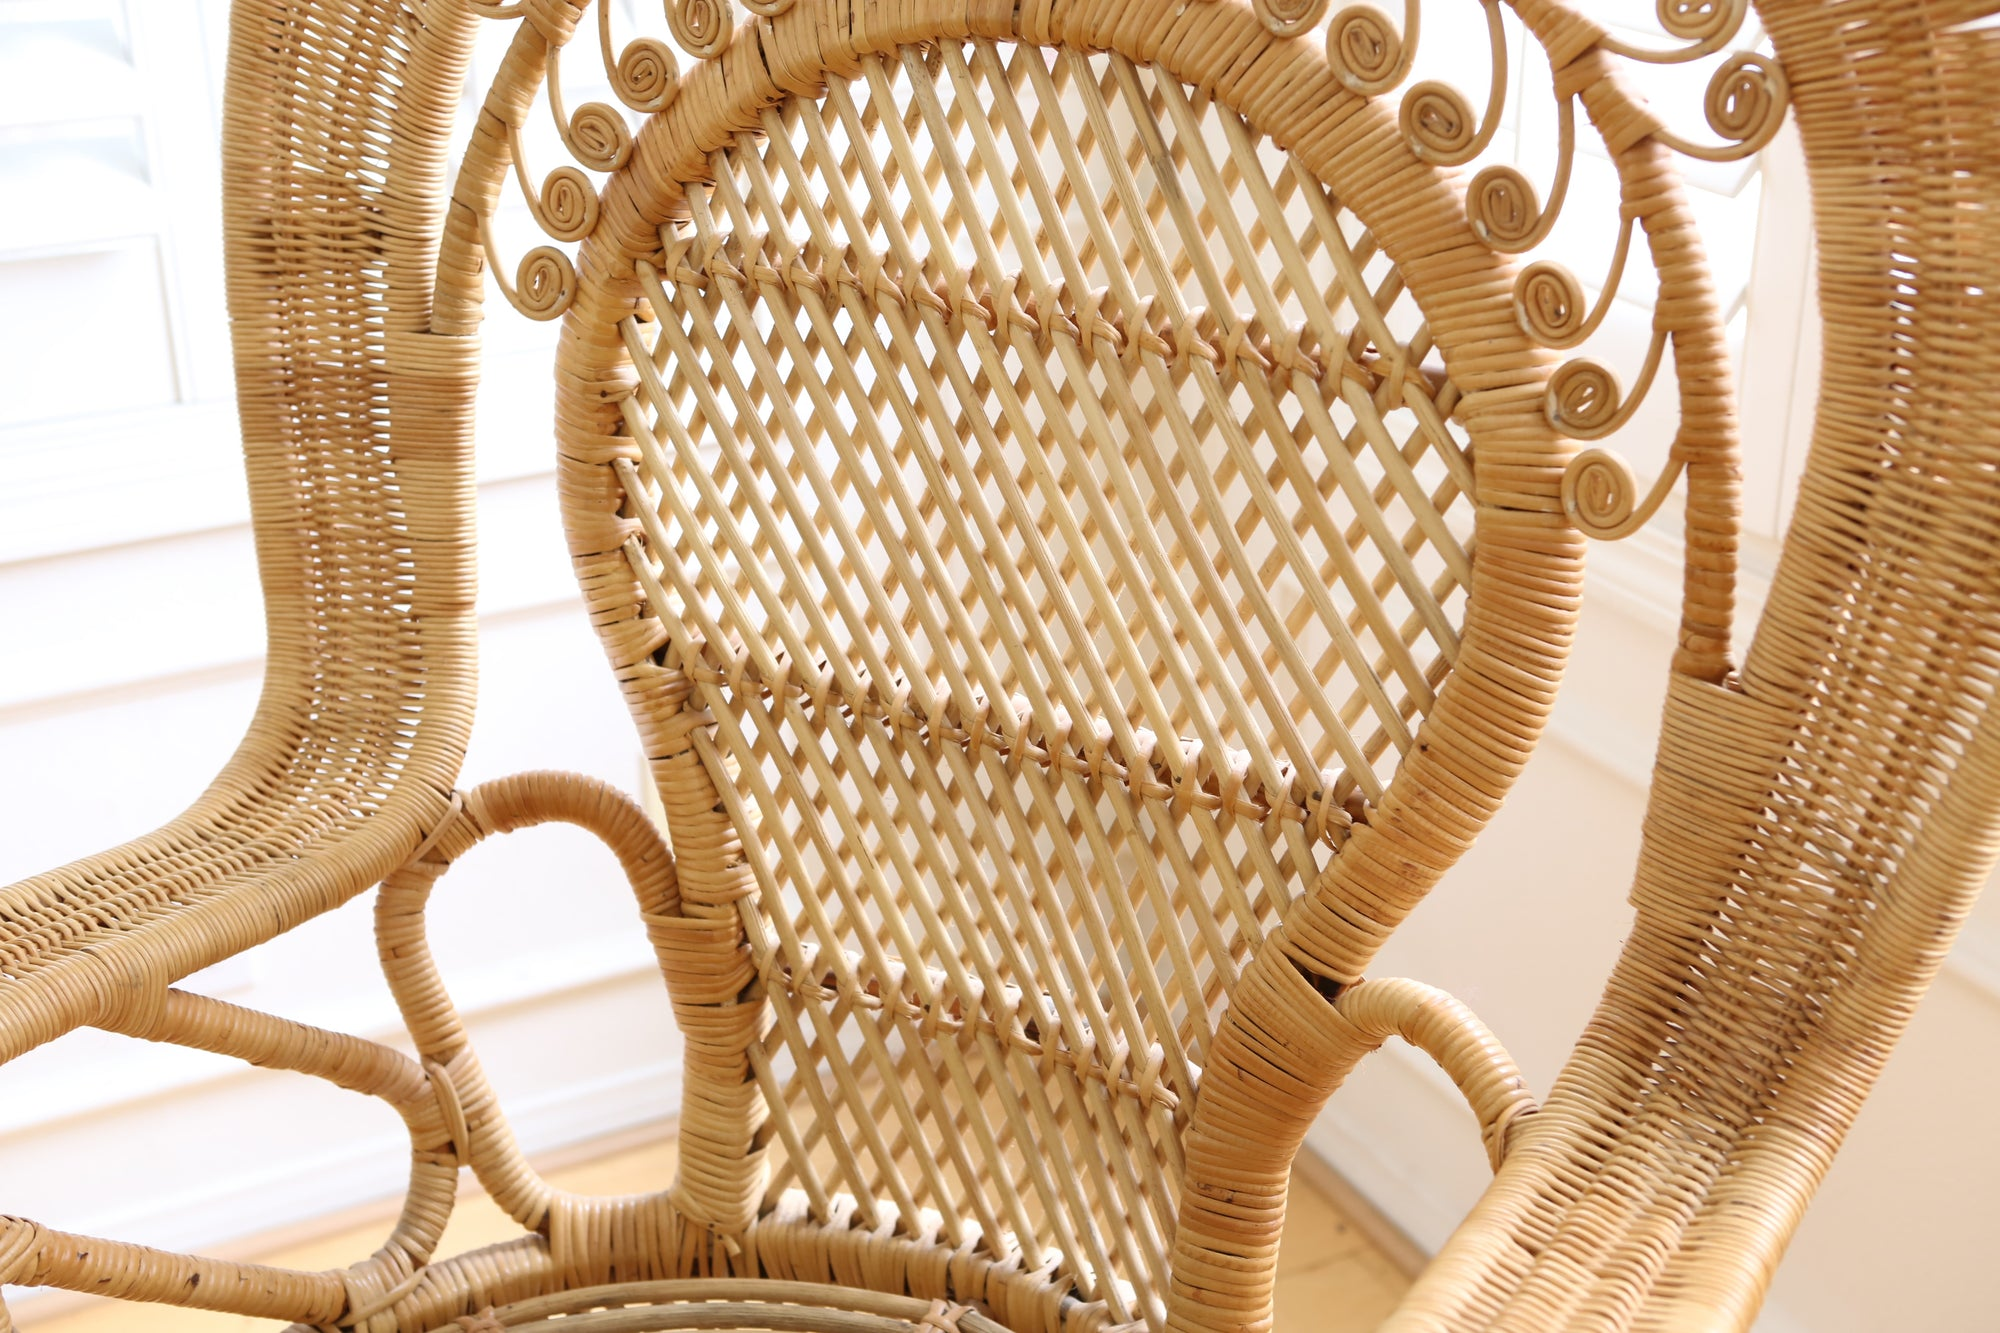 Vintage Rattan and Wicker Peacock Chair No 559 ShopGoldenPineapple